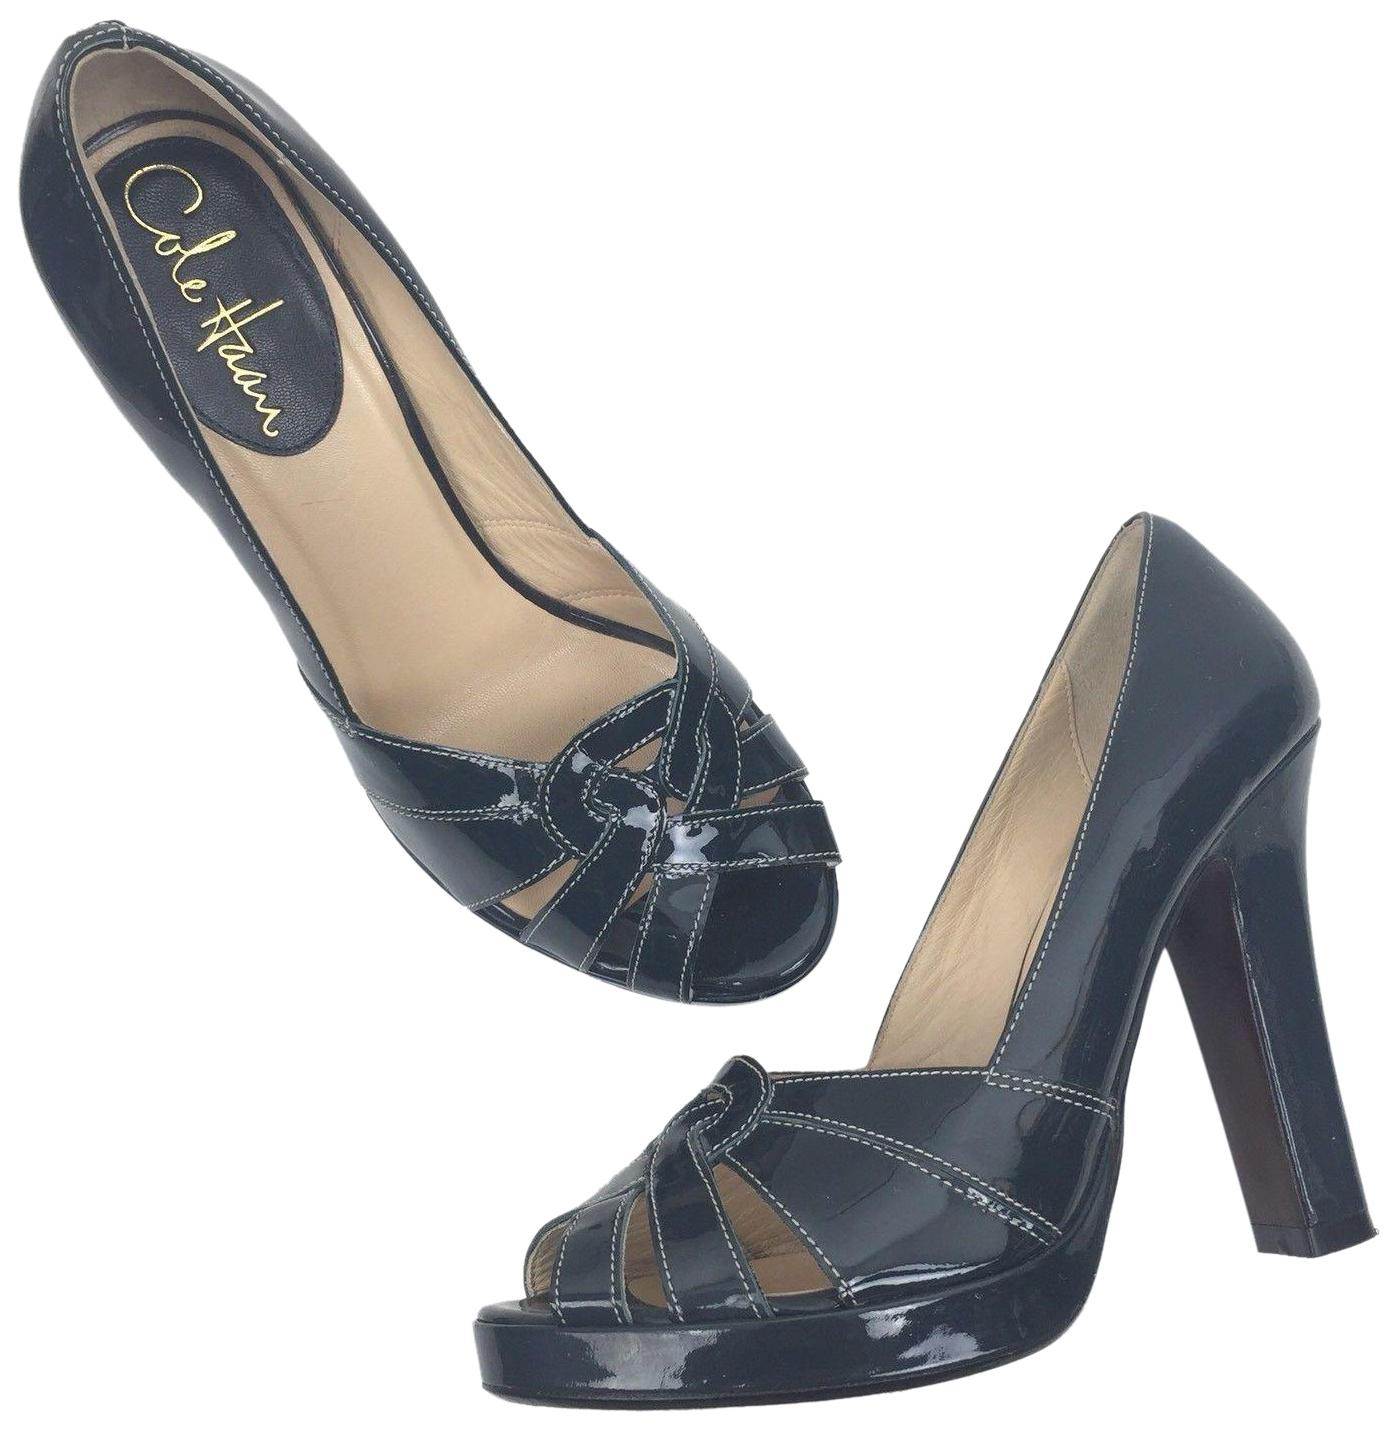 Cole Haan Green Peep Toe Patent Leather Pumps Size US 6.5 Regular (M, B)